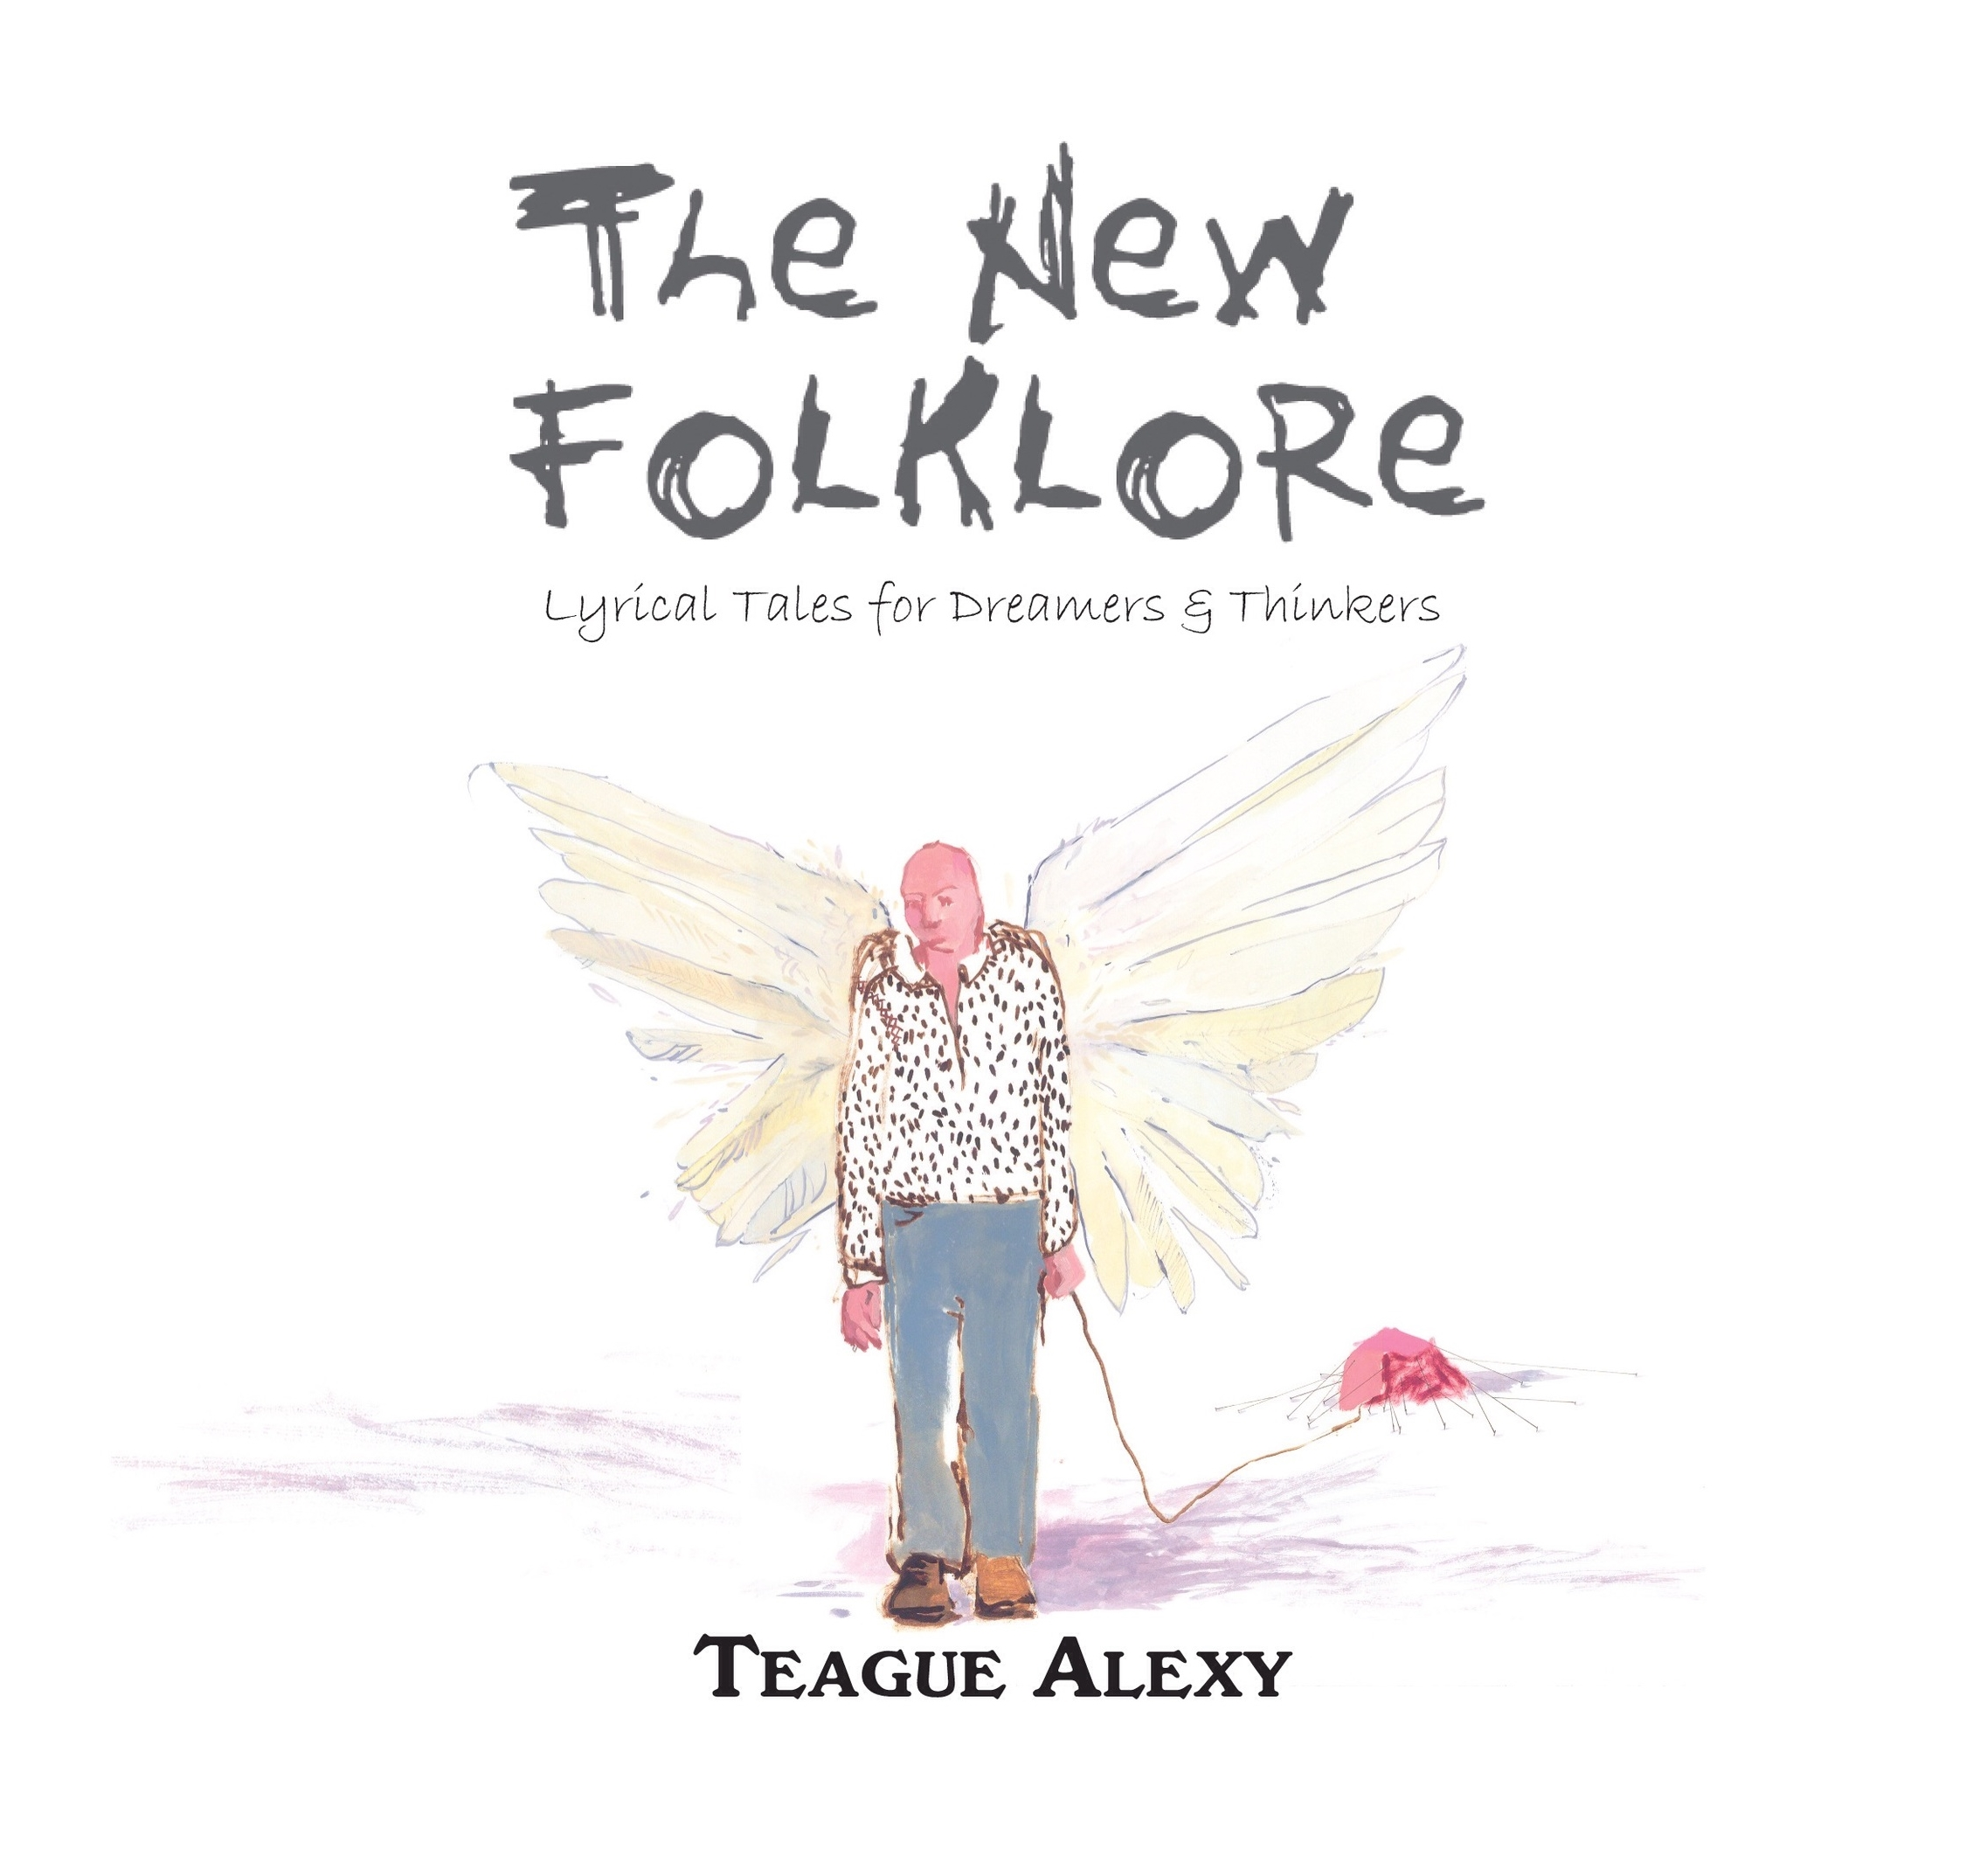 The New Folklore: Lyrical Tales for Dreamers and Thinkers